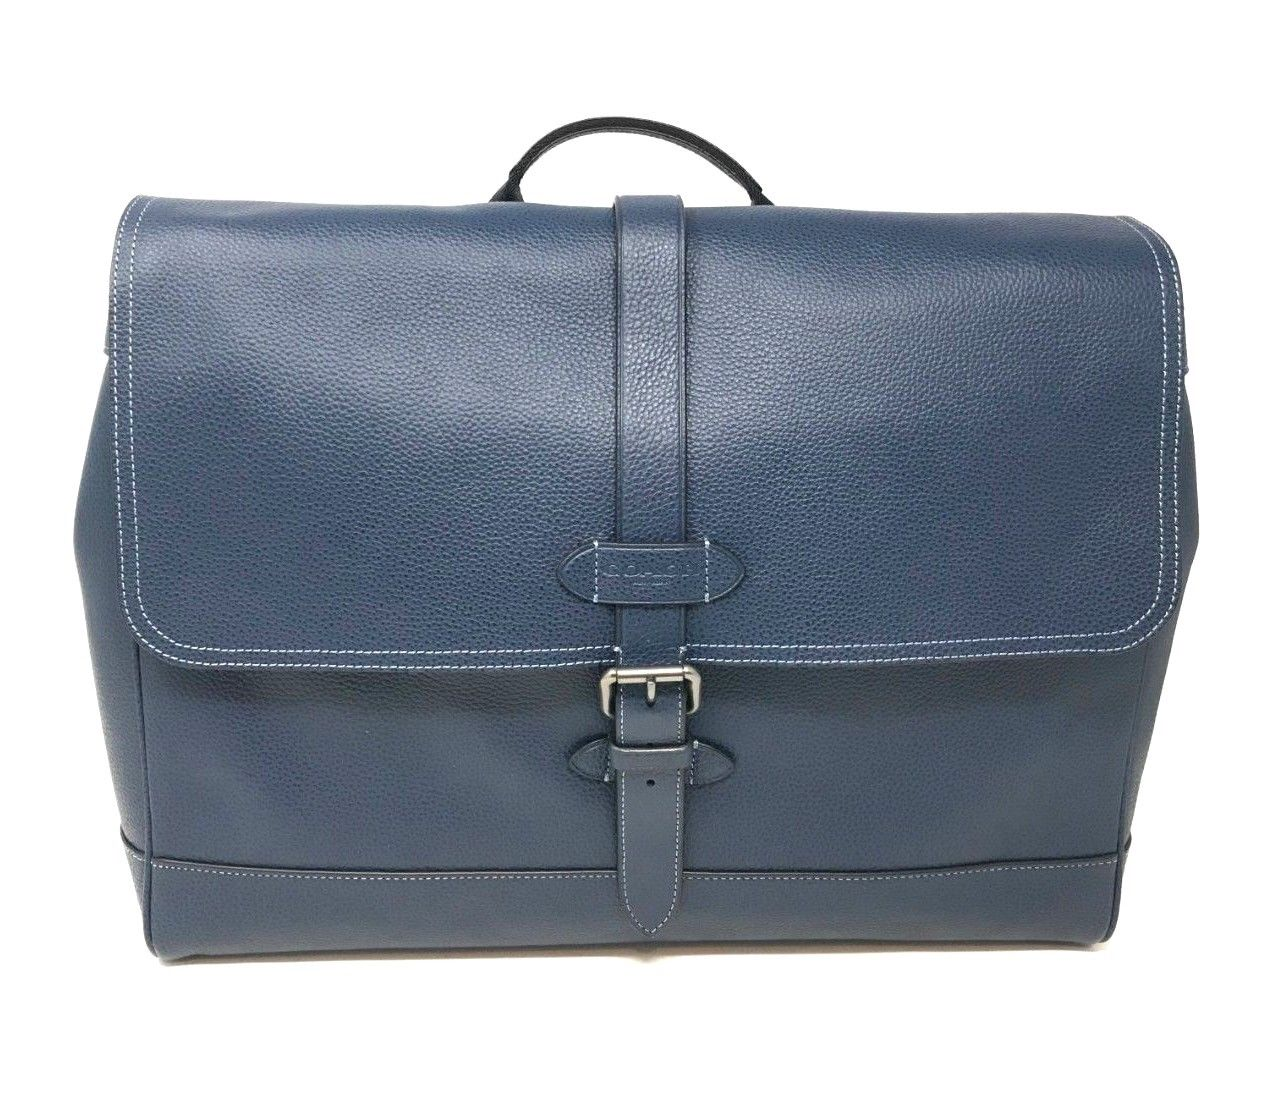 Coach Men's Hudson Messenger Bag In Midnight Navy Natural Leather F36810 $595